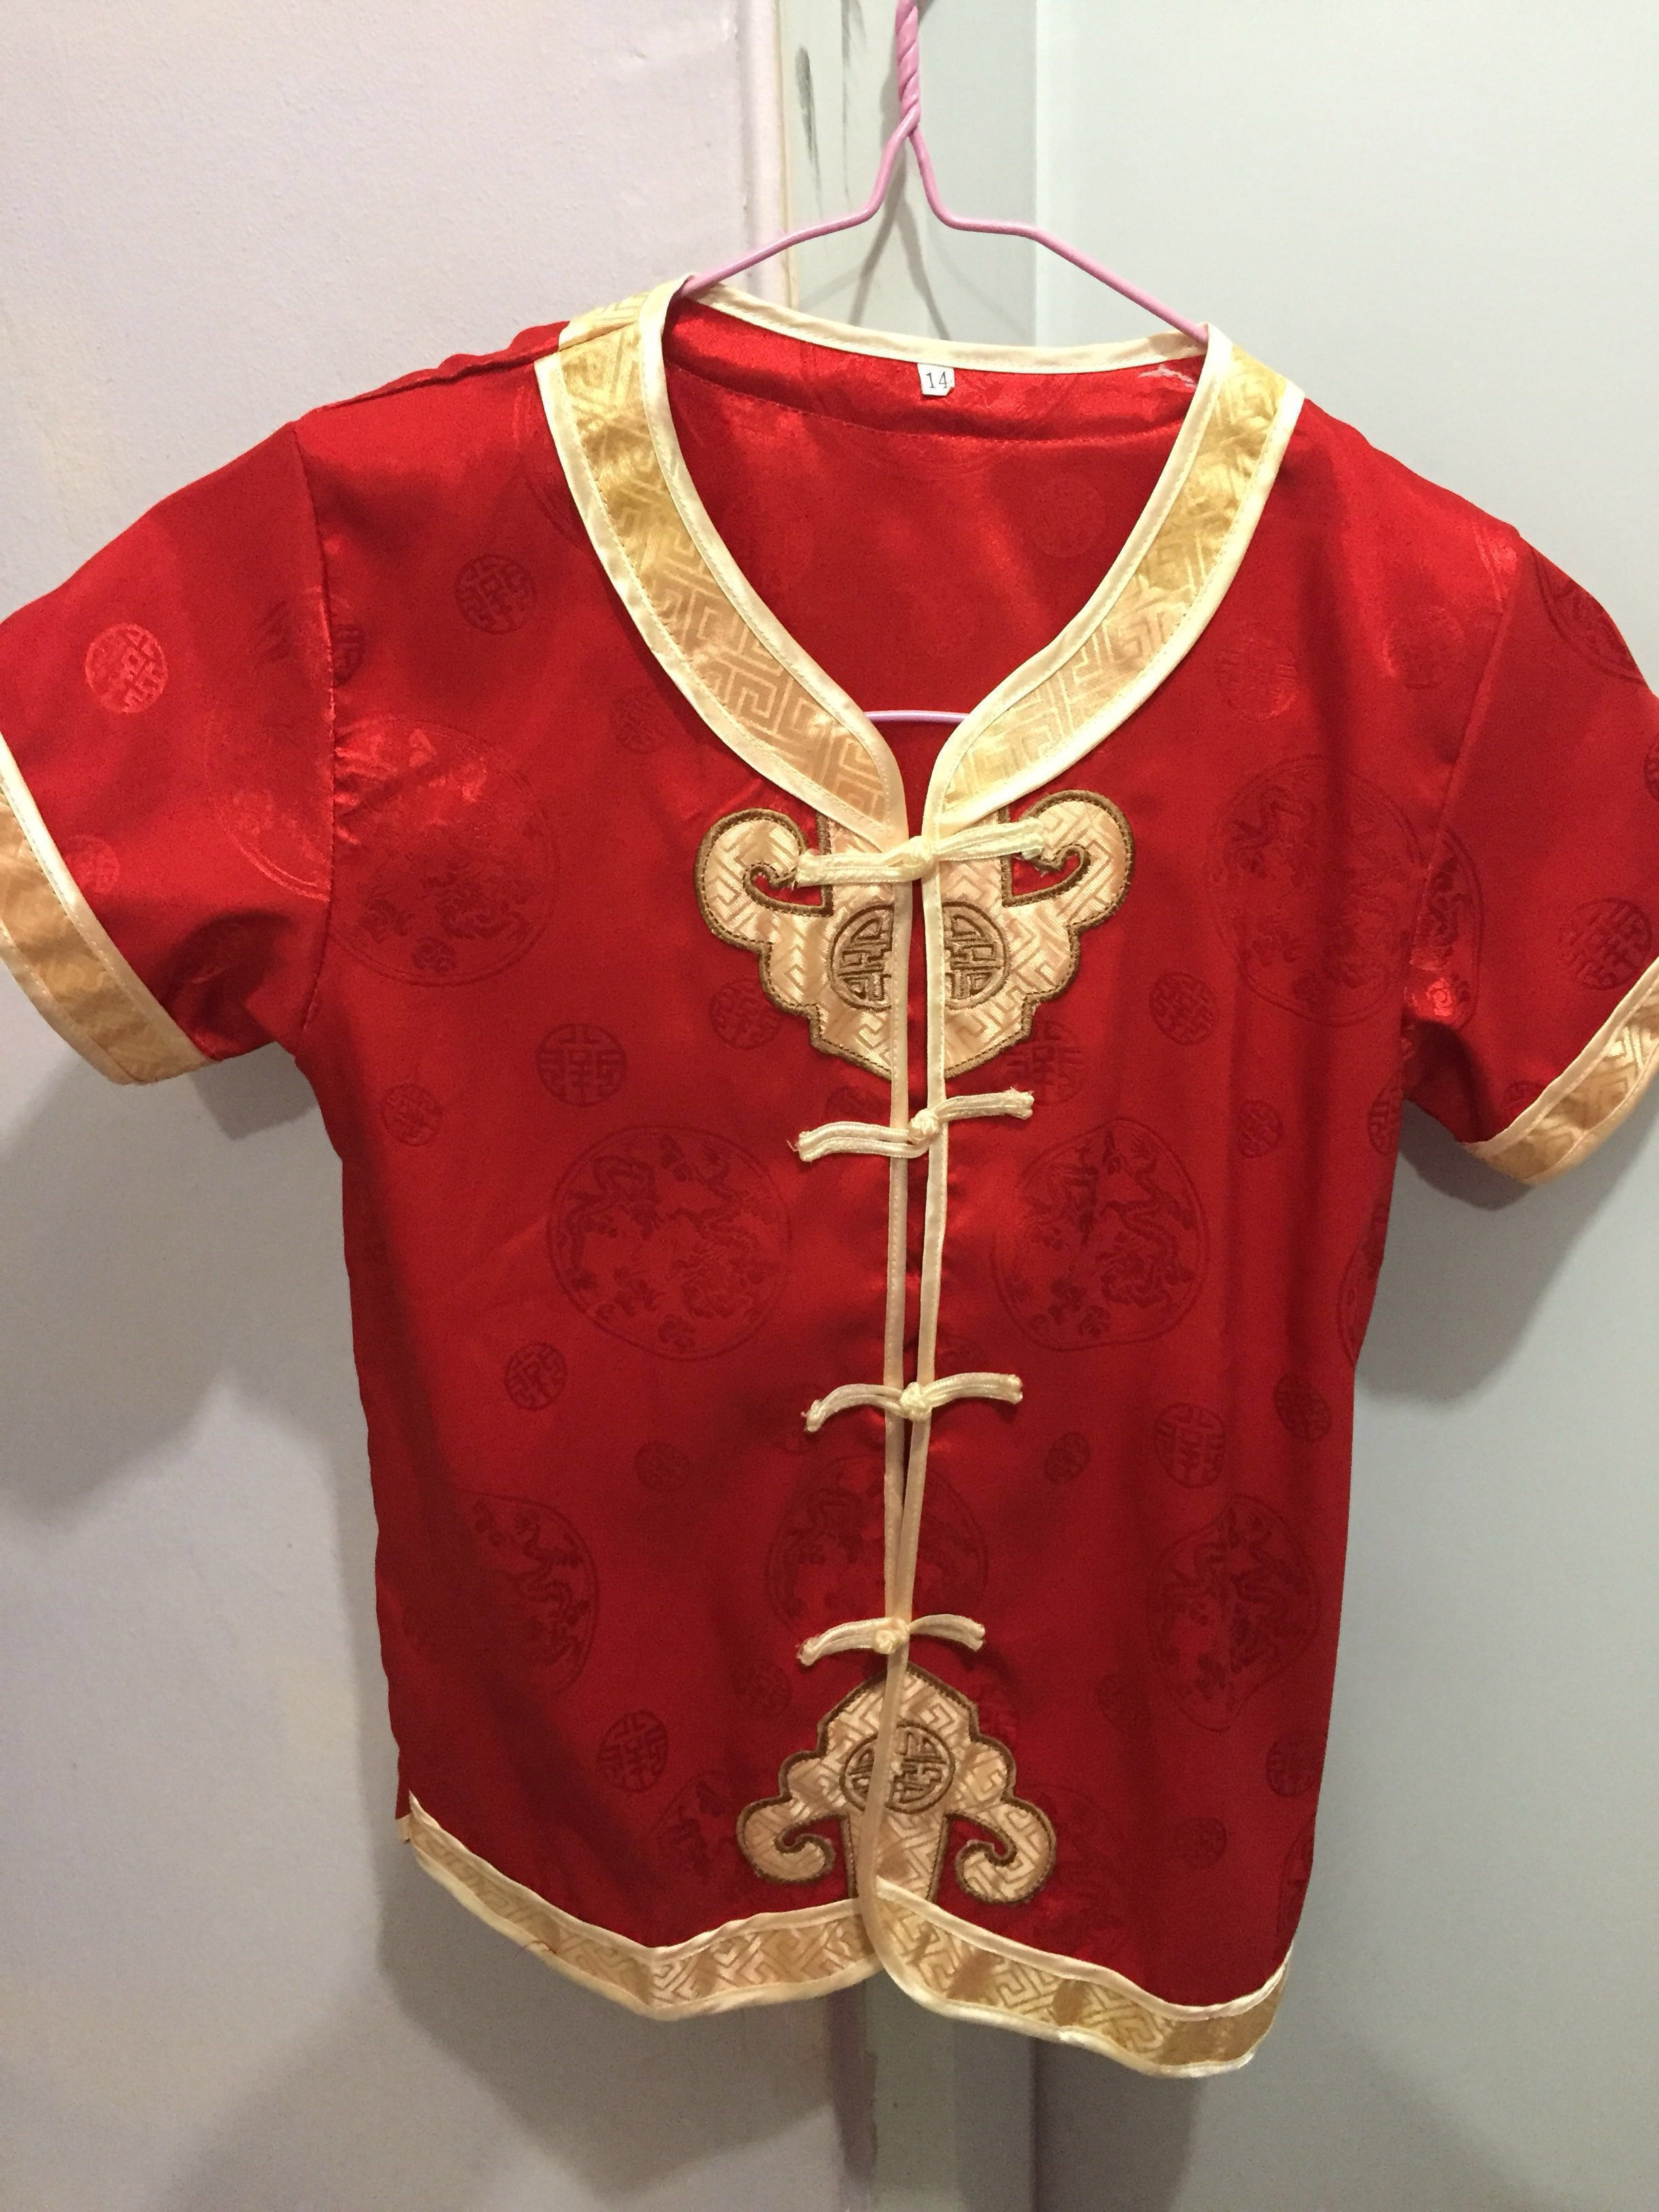 da84adf84 Kid Chinese New Year Costume size 14, Babies & Kids, Boys' Apparel ...